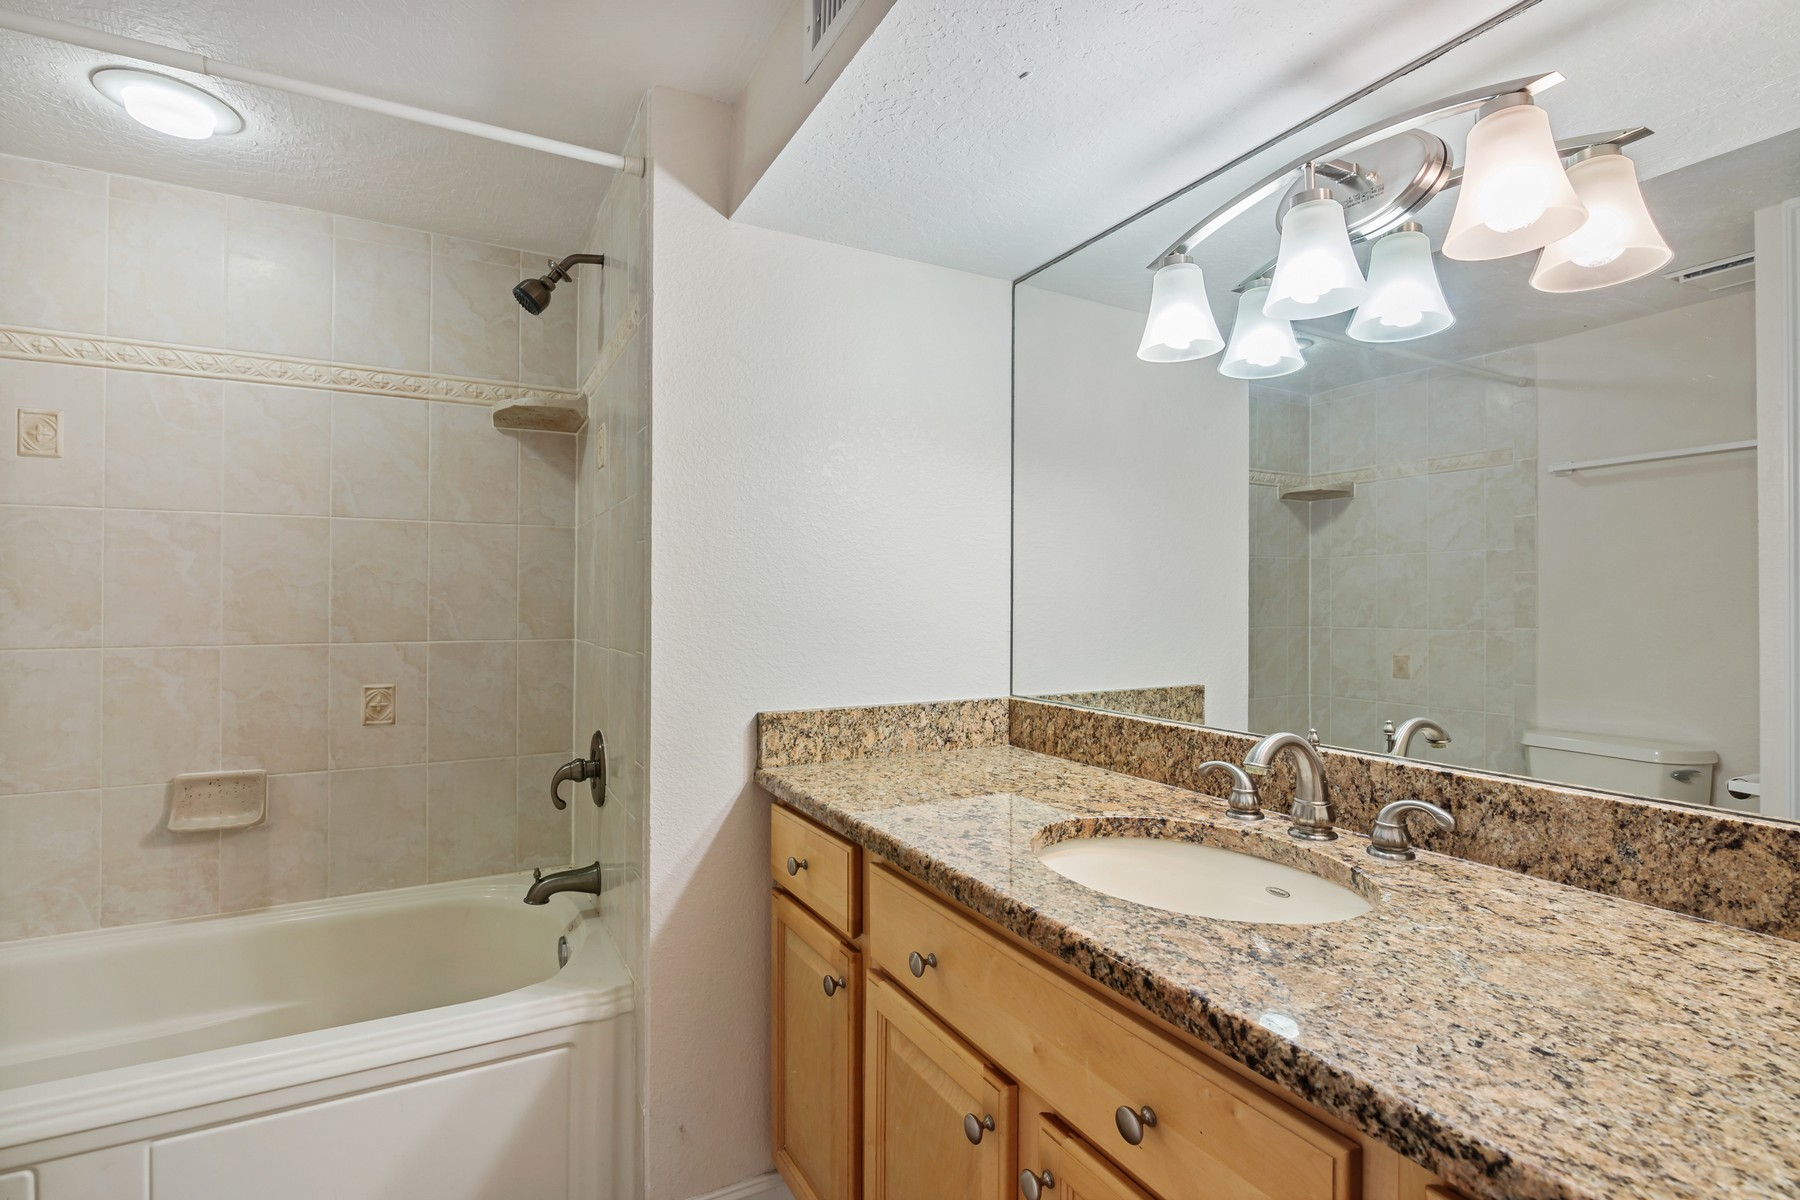 Additional photo for property listing at Casa Playa 3031 S. Atlantic 302 Cocoa Beach, Florida 32931 United States